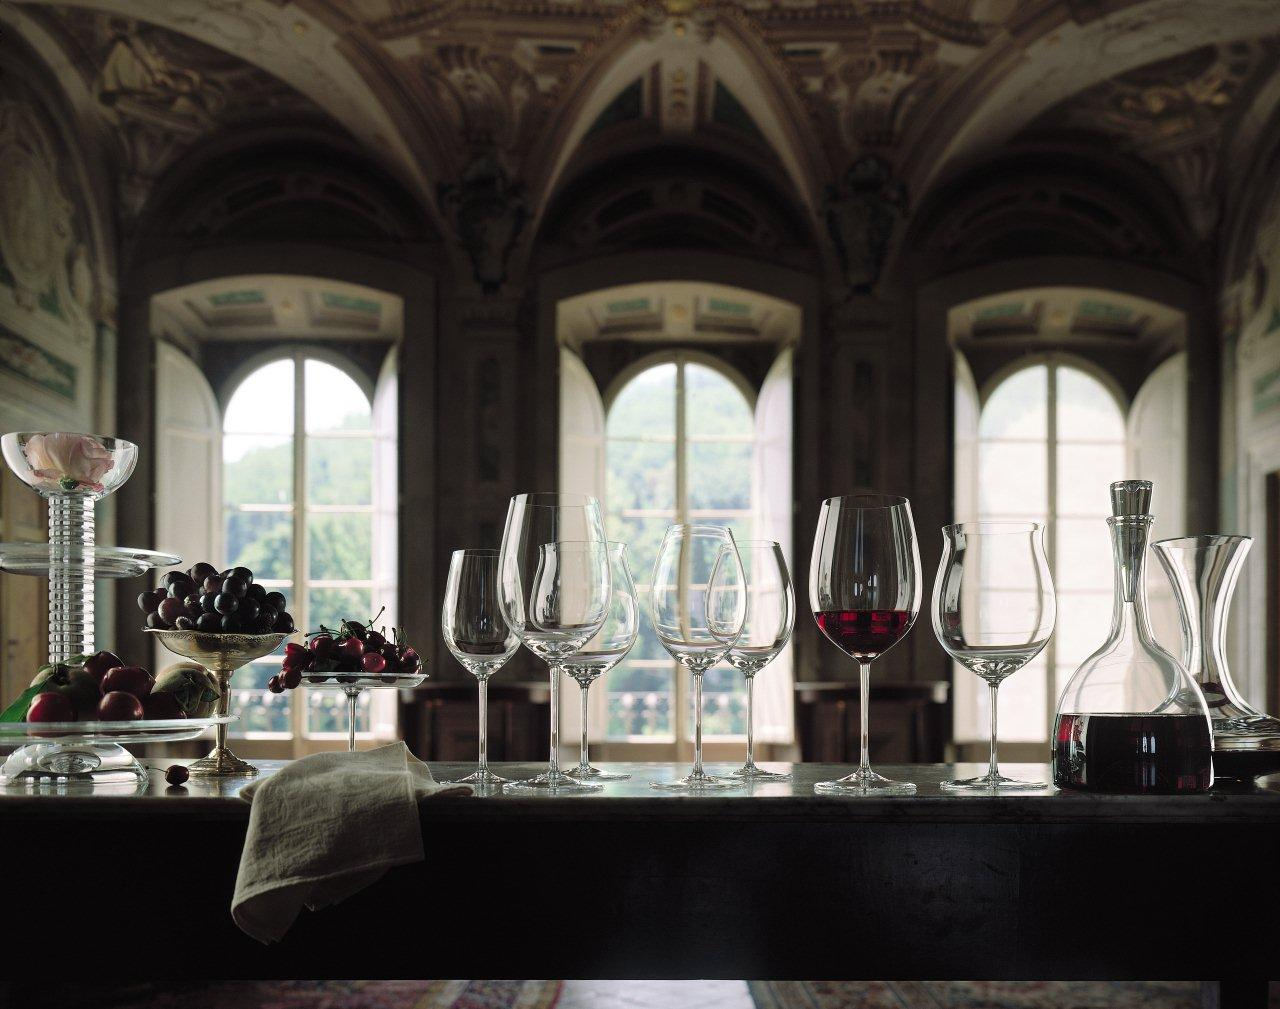 The Secret of the Wine Glass: A tasting with Riedel glasses